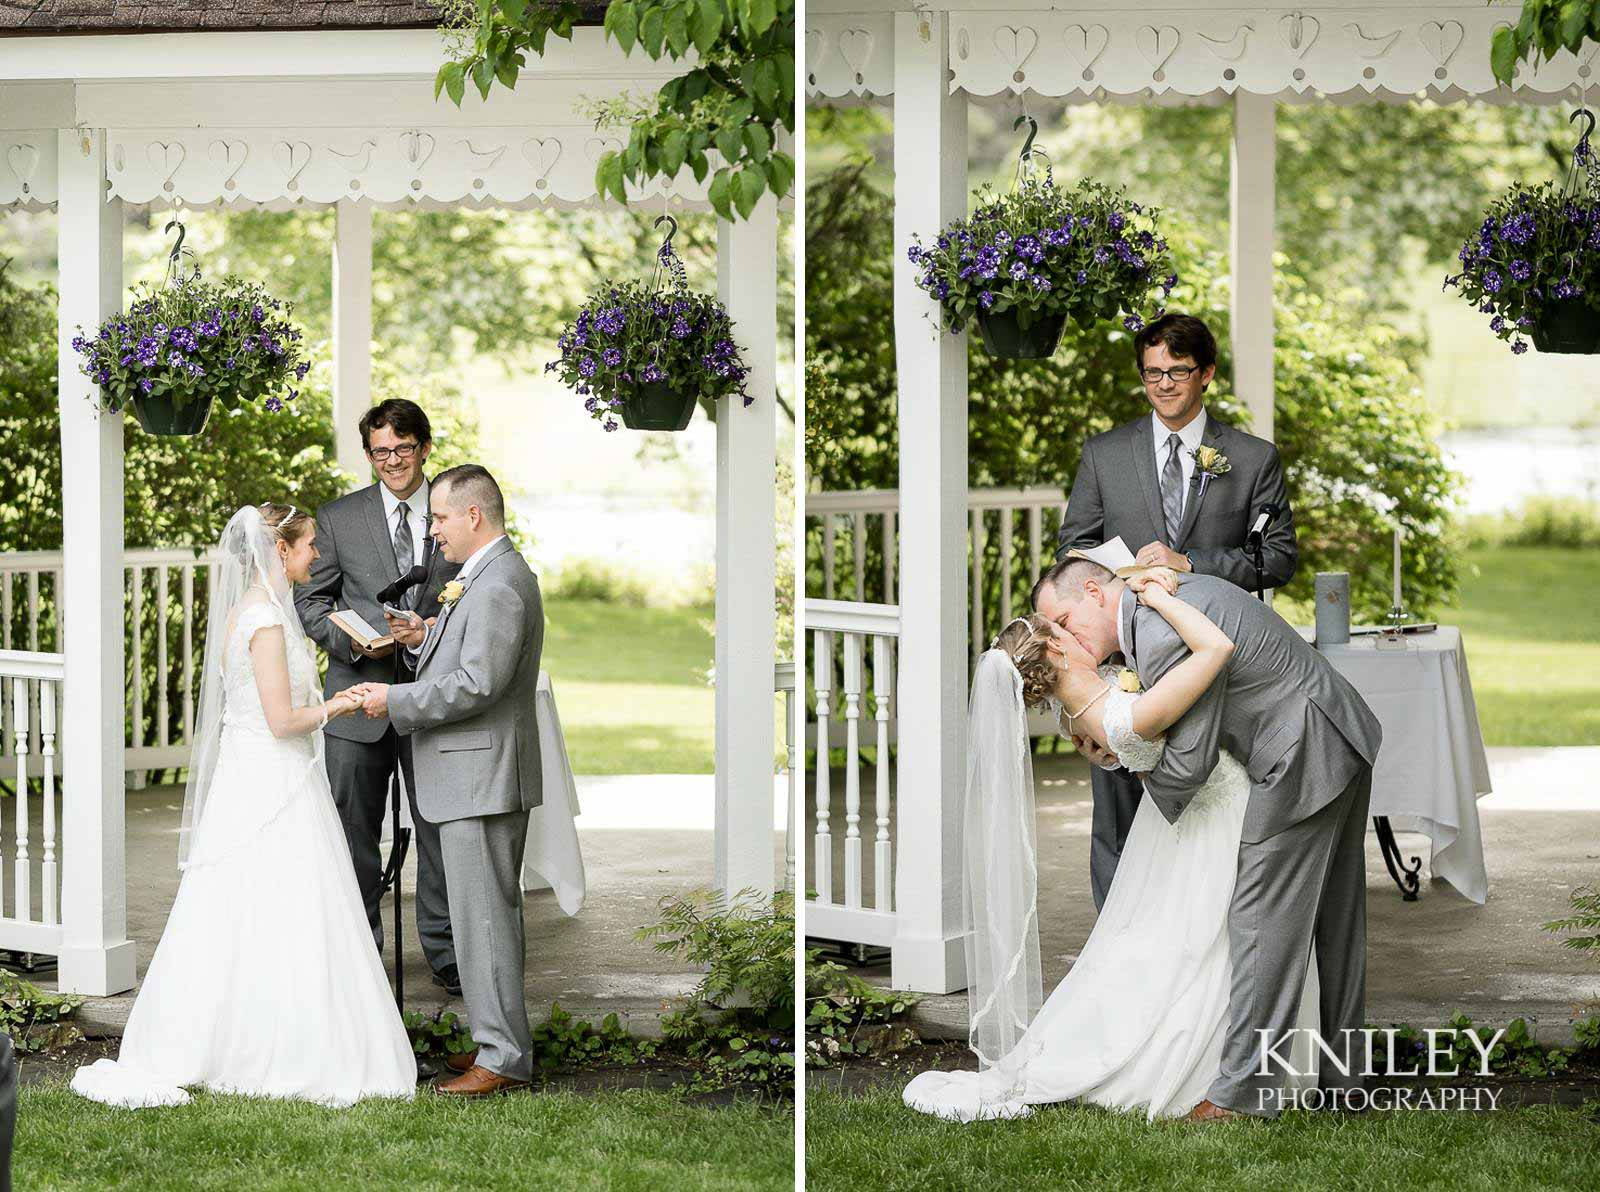 32-Plantation-Party-House-springtime-wedding-Rochester-NY-Kniley-Photography.jpg